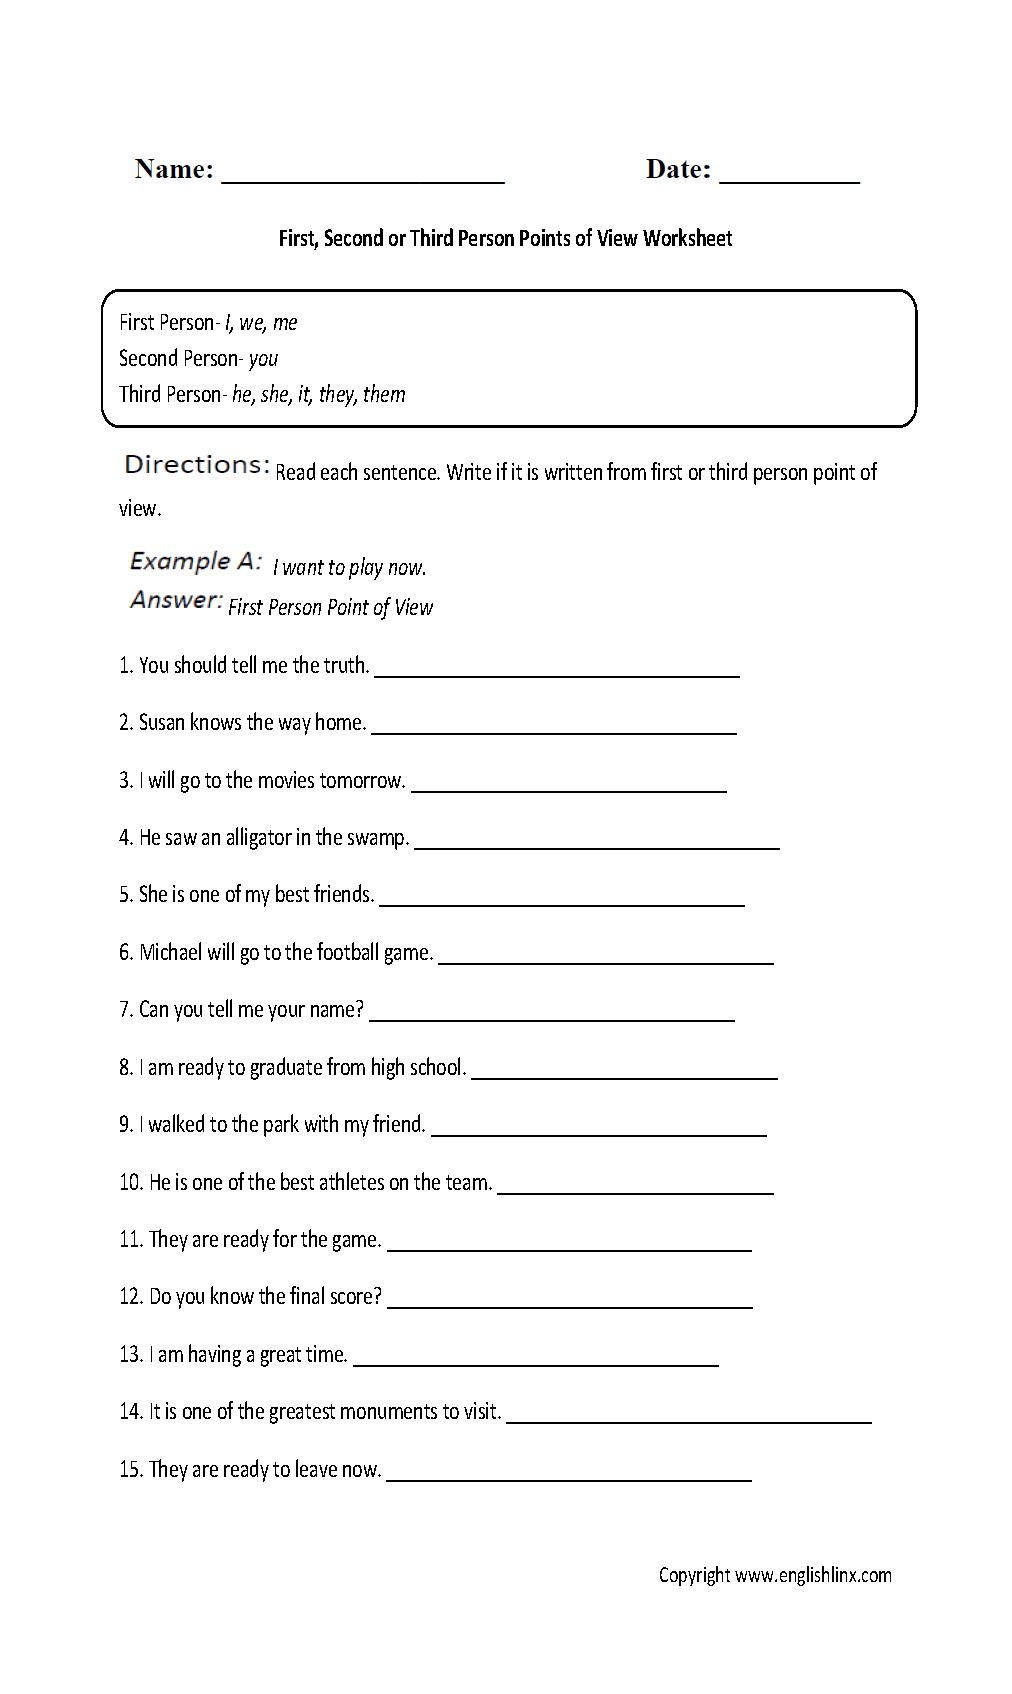 Weirdmailus  Scenic Englishlinxcom  Point Of View Worksheets With Remarkable Point Of View Worksheet With Enchanting Free Letter S Worksheets Also Life Cycle Of A Plant Worksheet For Rd Grade In Addition Preposition Of Place Worksheet For Kids And Worksheets On Adjectives For Class  As Well As Reading Comprehension Worksheets For Nd Graders Additionally Free Addition Worksheets First Grade From Englishlinxcom With Weirdmailus  Remarkable Englishlinxcom  Point Of View Worksheets With Enchanting Point Of View Worksheet And Scenic Free Letter S Worksheets Also Life Cycle Of A Plant Worksheet For Rd Grade In Addition Preposition Of Place Worksheet For Kids From Englishlinxcom